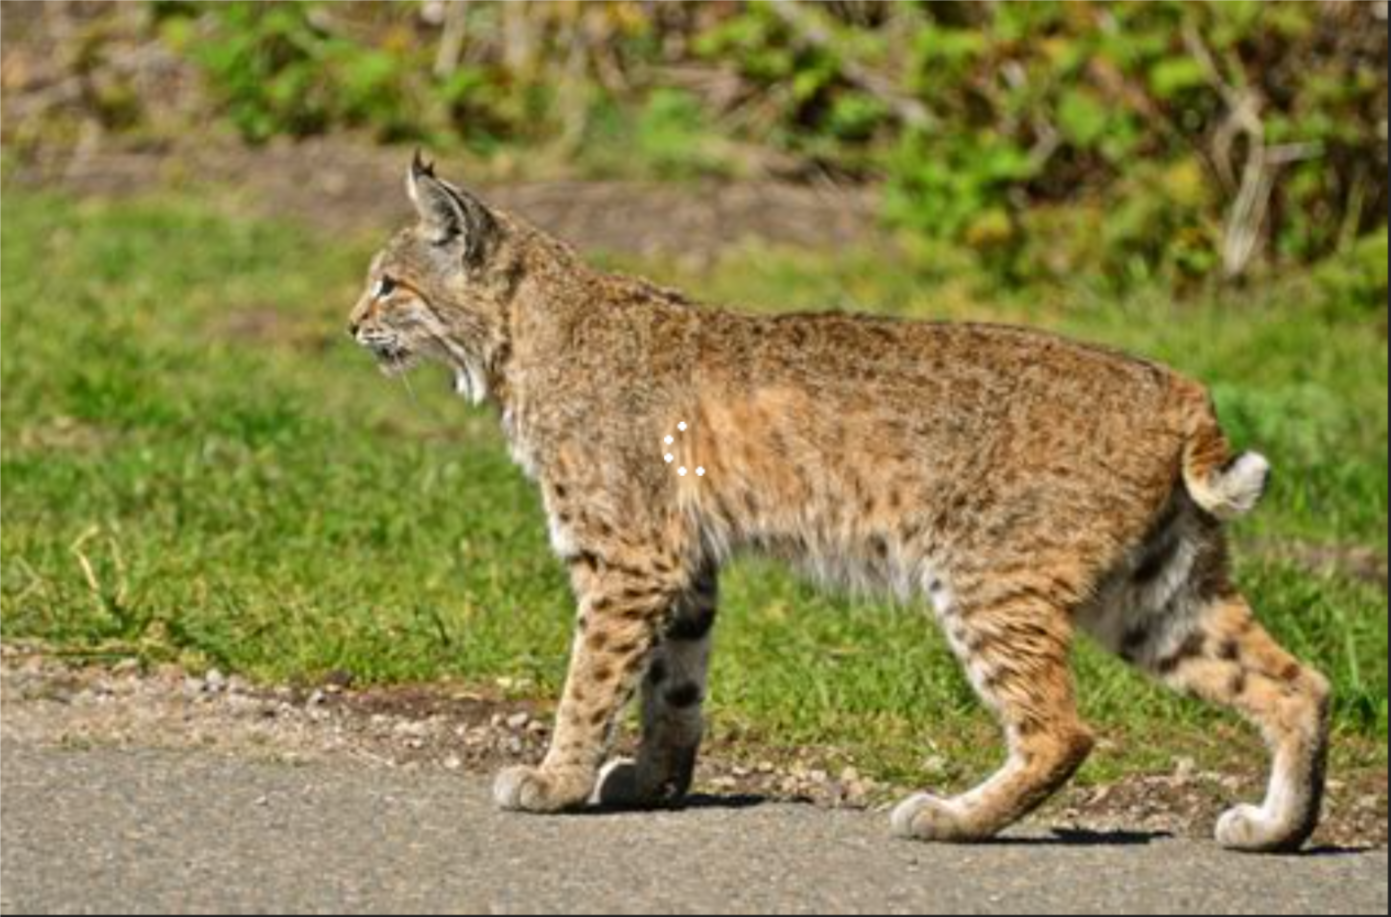 Forgot to mention, driving through the North Rim yesterday, I spied three bobcats crossing the road.  Braked to watch.  Lovely creatures.